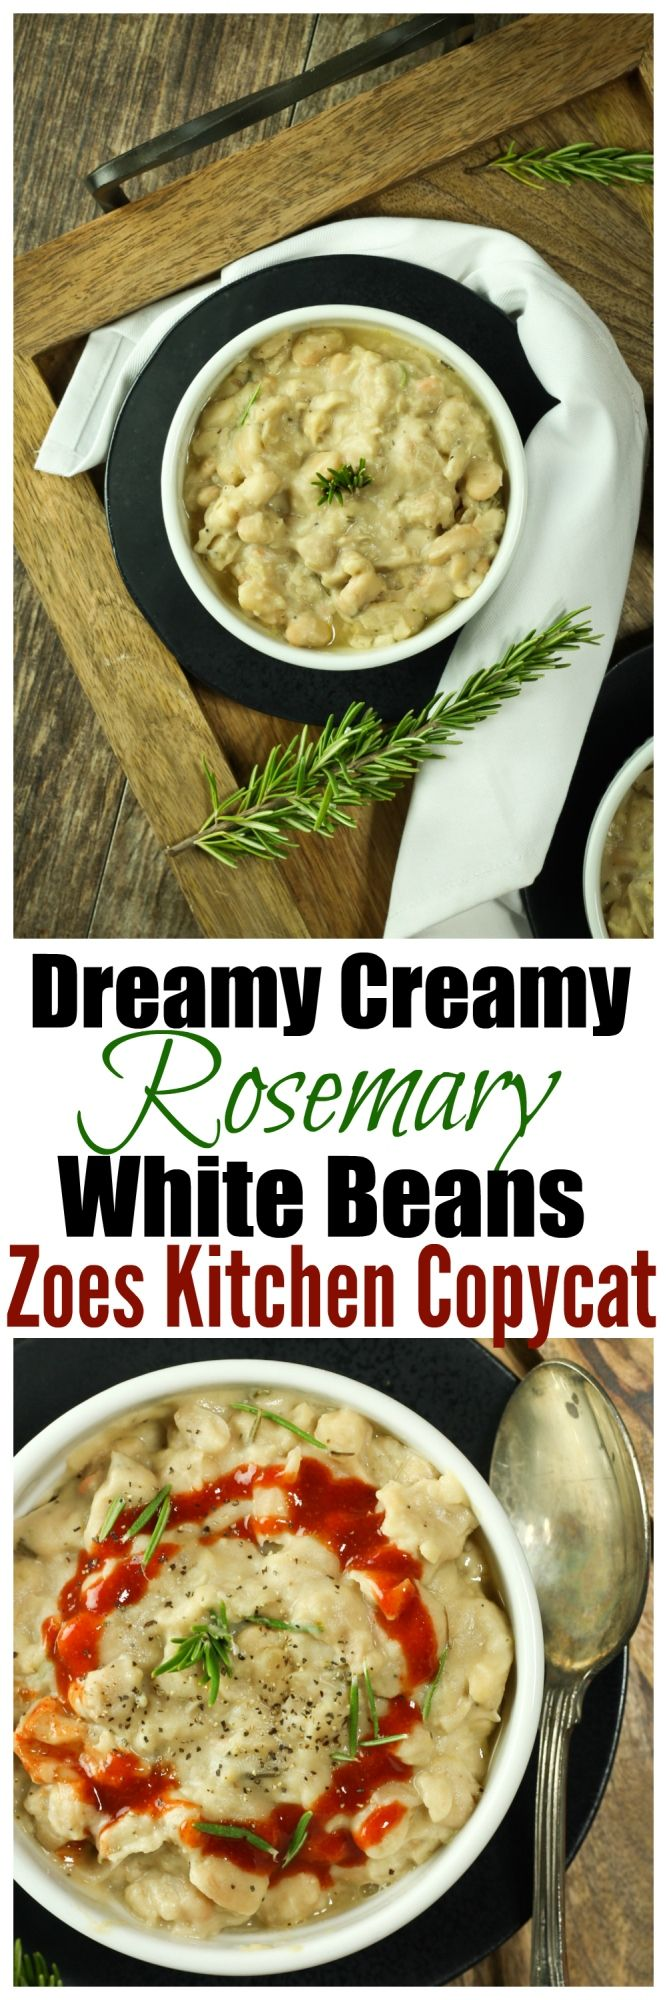 "Dreamy Creamy Rosemary White Beans REMAKE from the super popular ""Braised White Beans"" from Zoes Kitchen! BUT made so much healthier without any oil!"